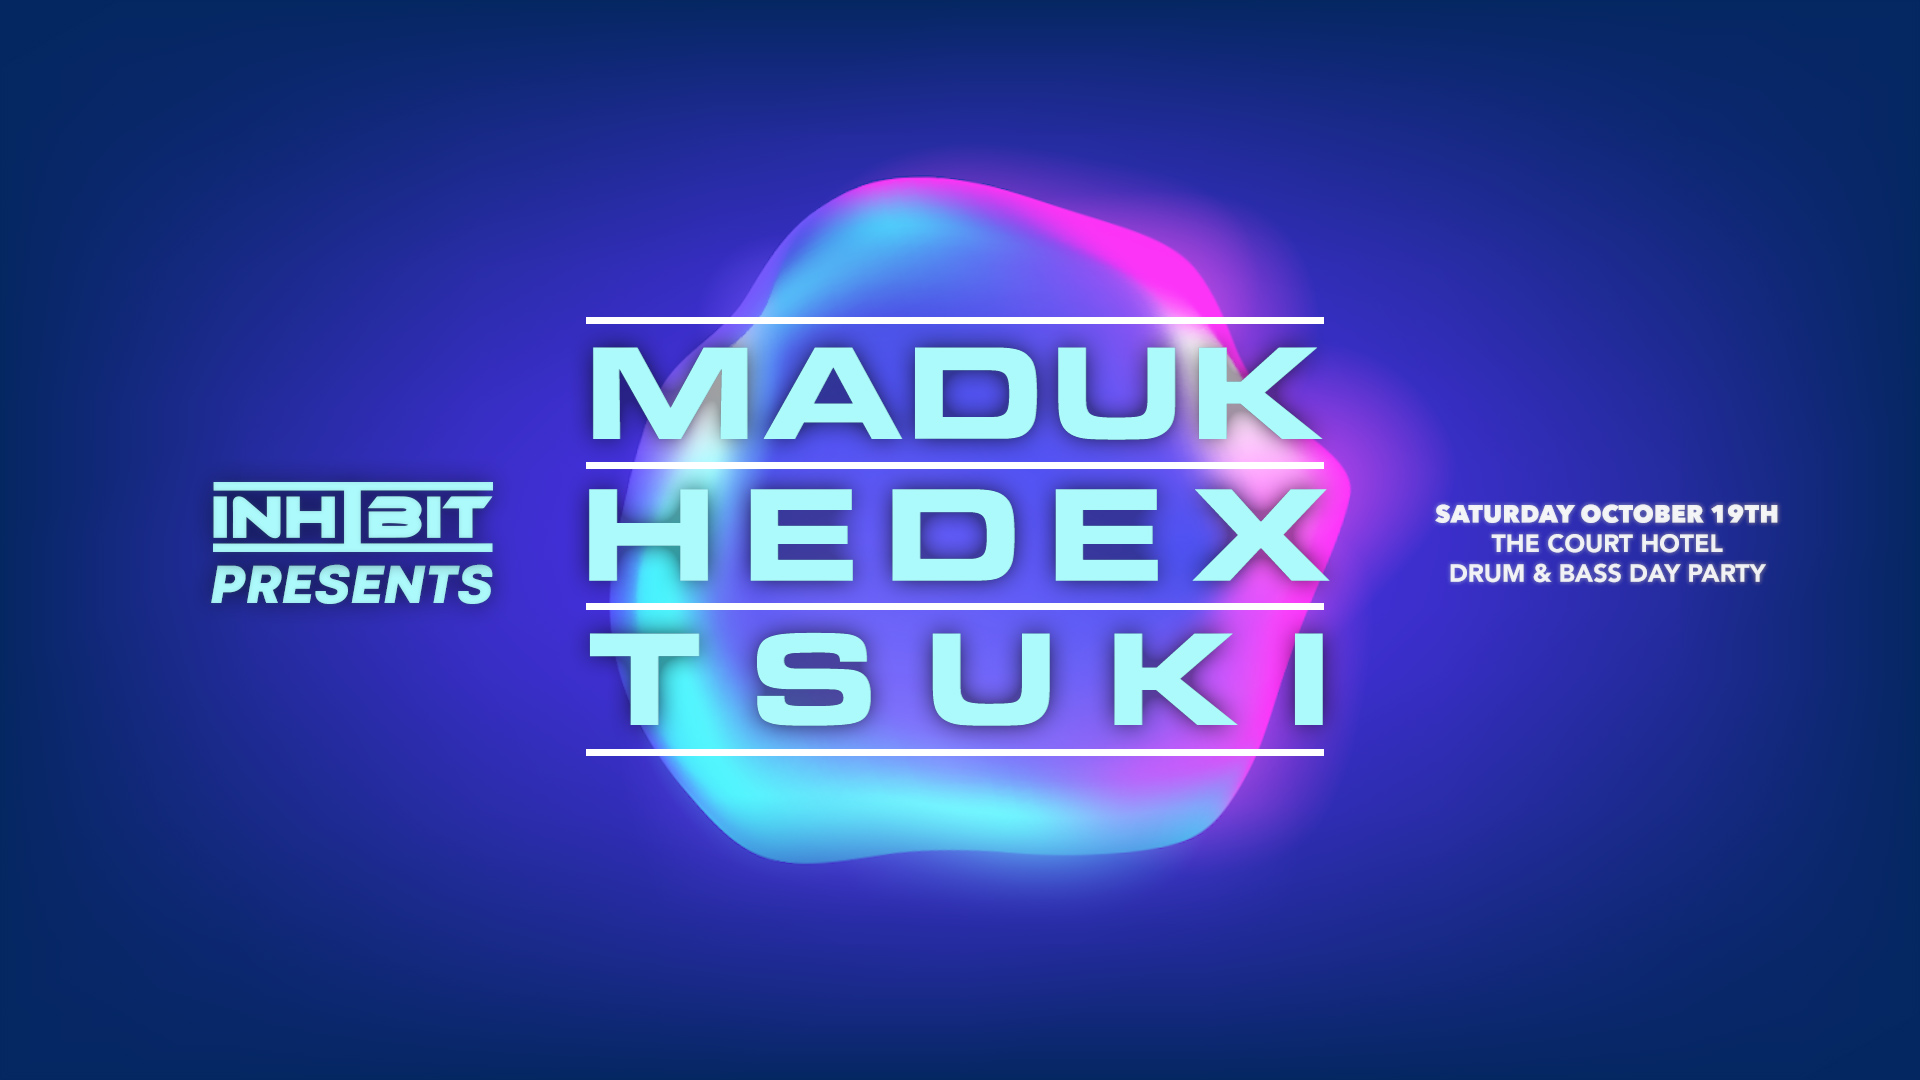 Tickets for Inhibit presents Maduk, Hedex & Tsuki in Perth from Ticketbooth